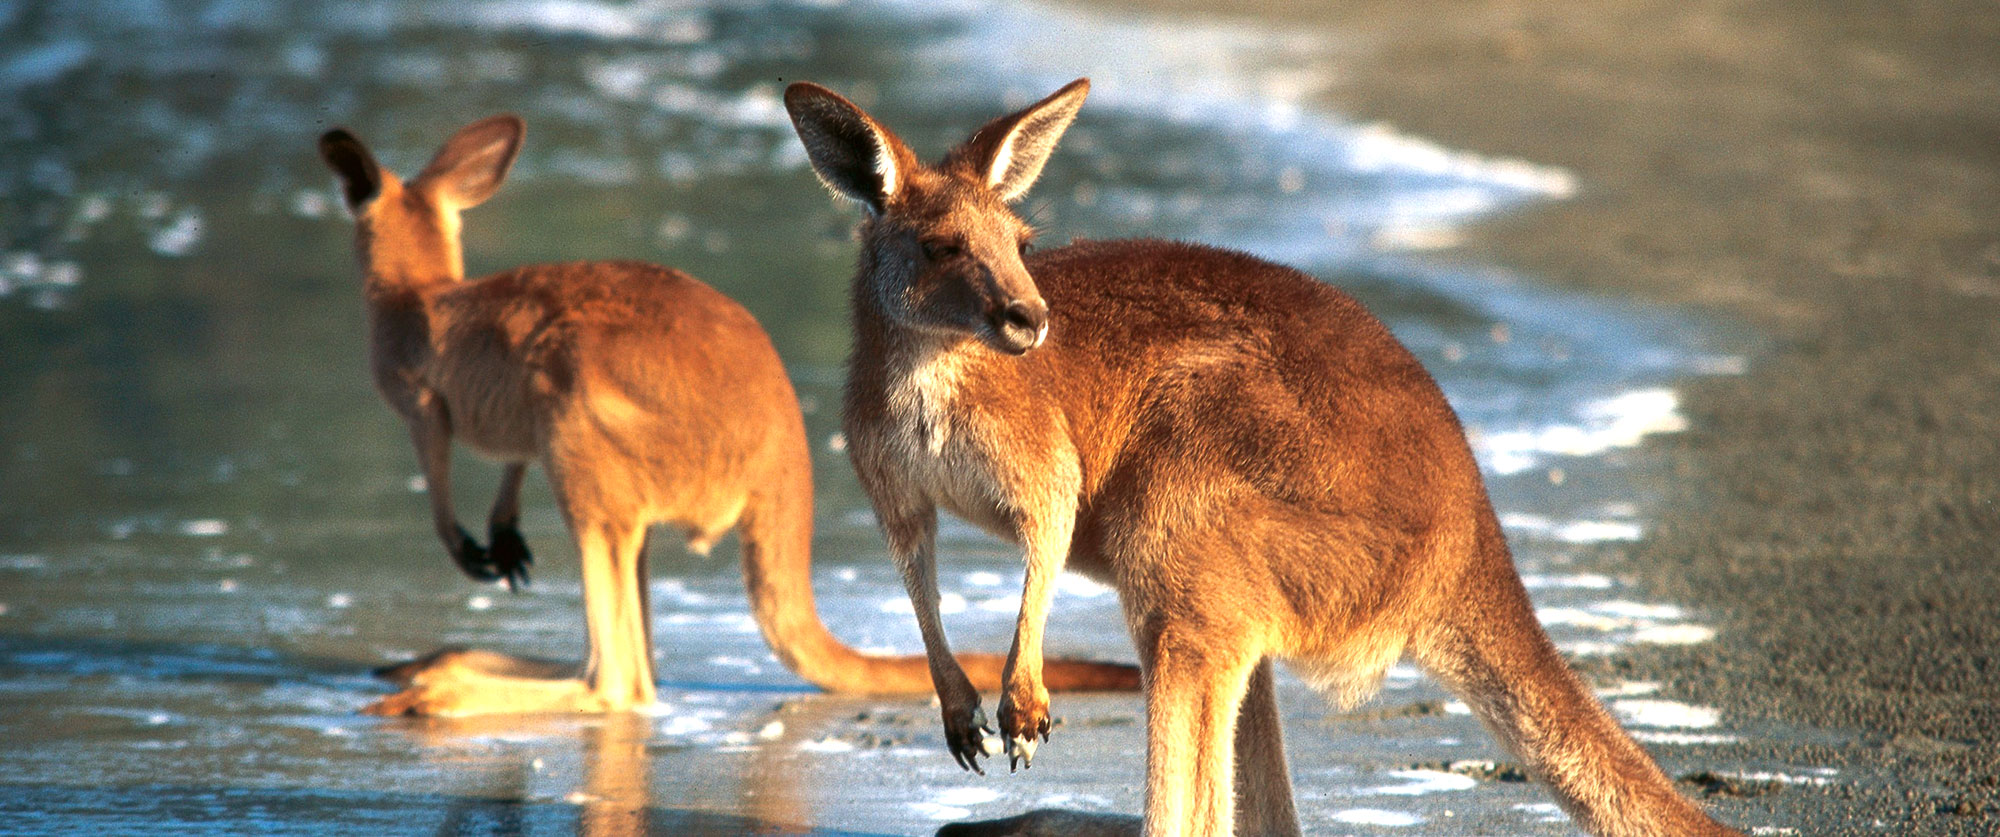 Australia Luxury Vacations: Cities and Reef Package - kangaroos beach